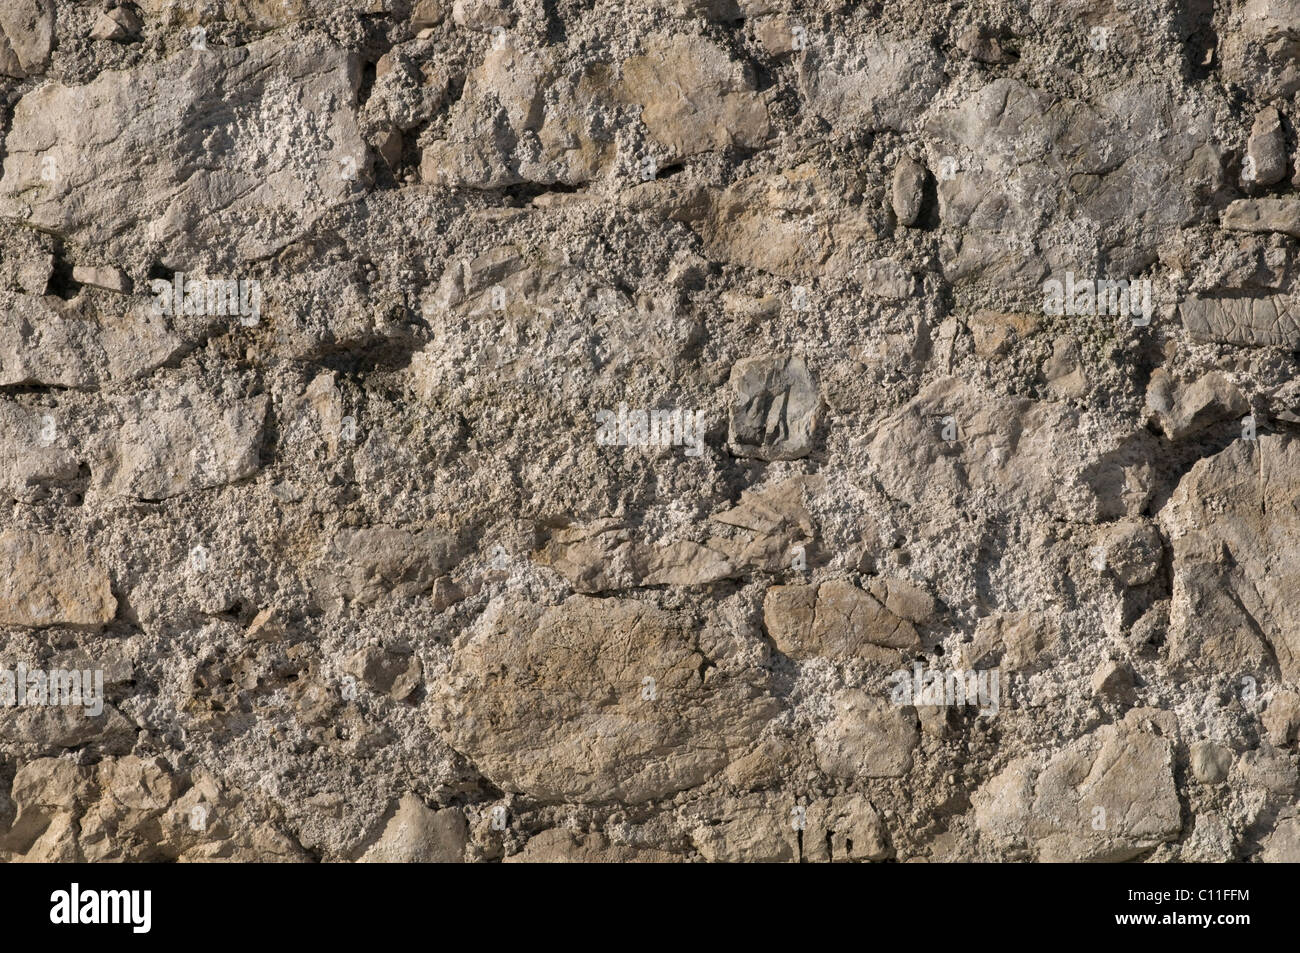 Stone wall, detail, background - Stock Image